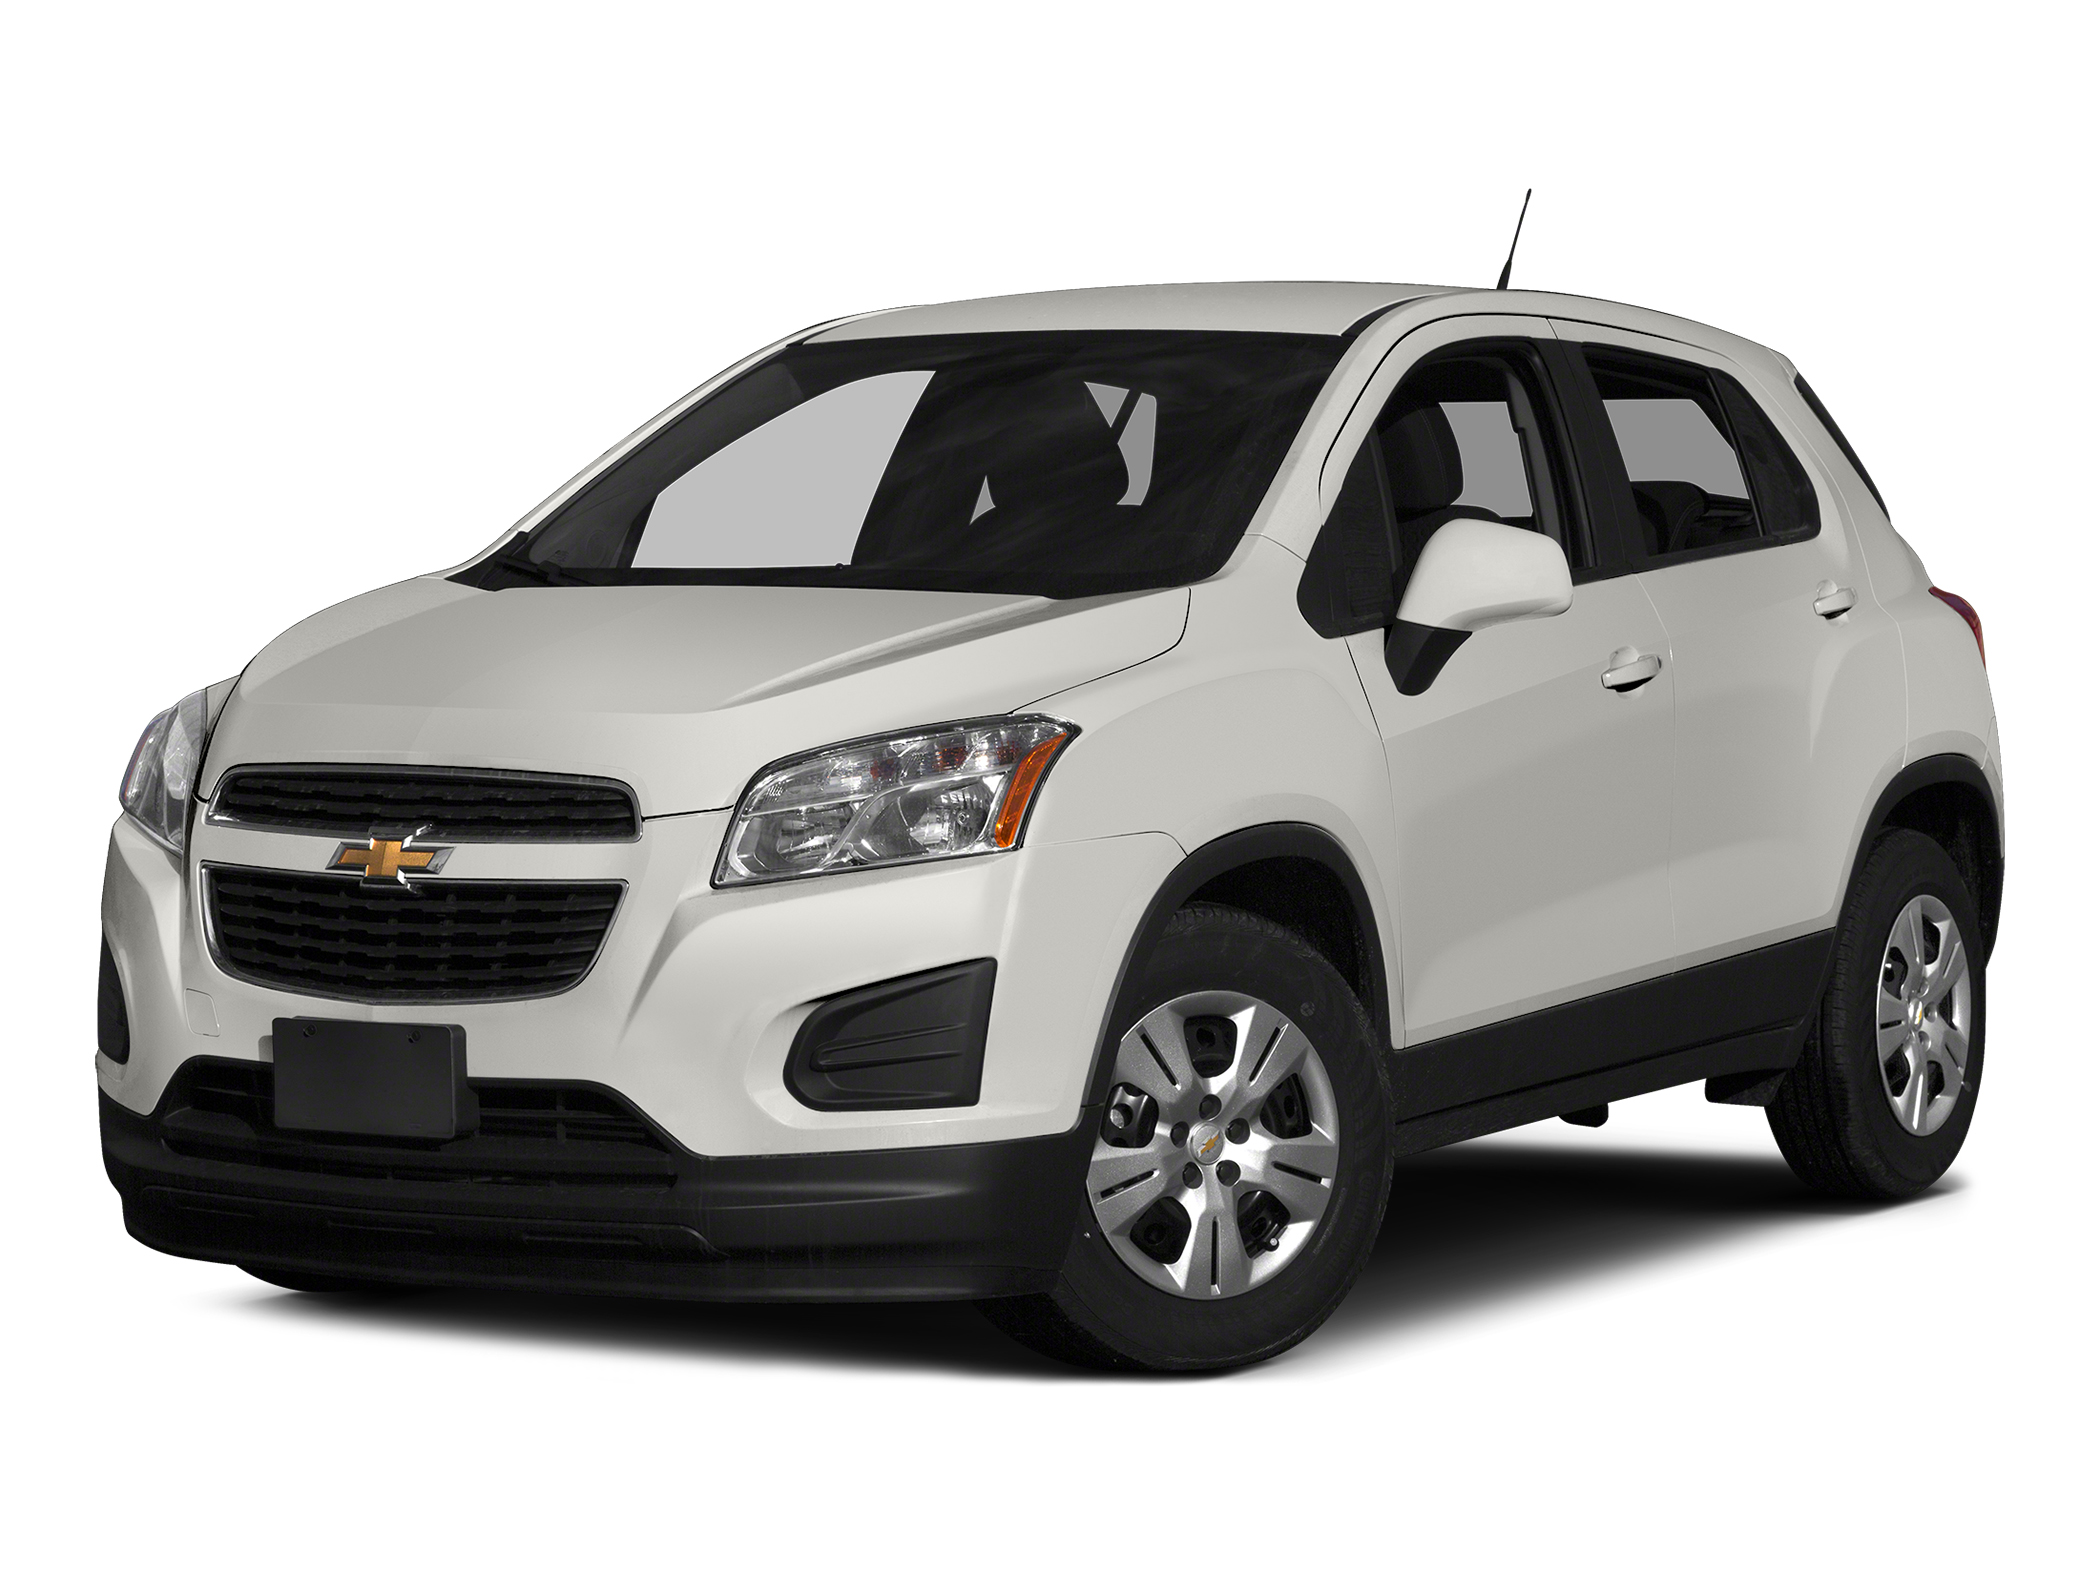 2015 chevrolet trax exterior white 525 cars performance reviews and test drive. Black Bedroom Furniture Sets. Home Design Ideas